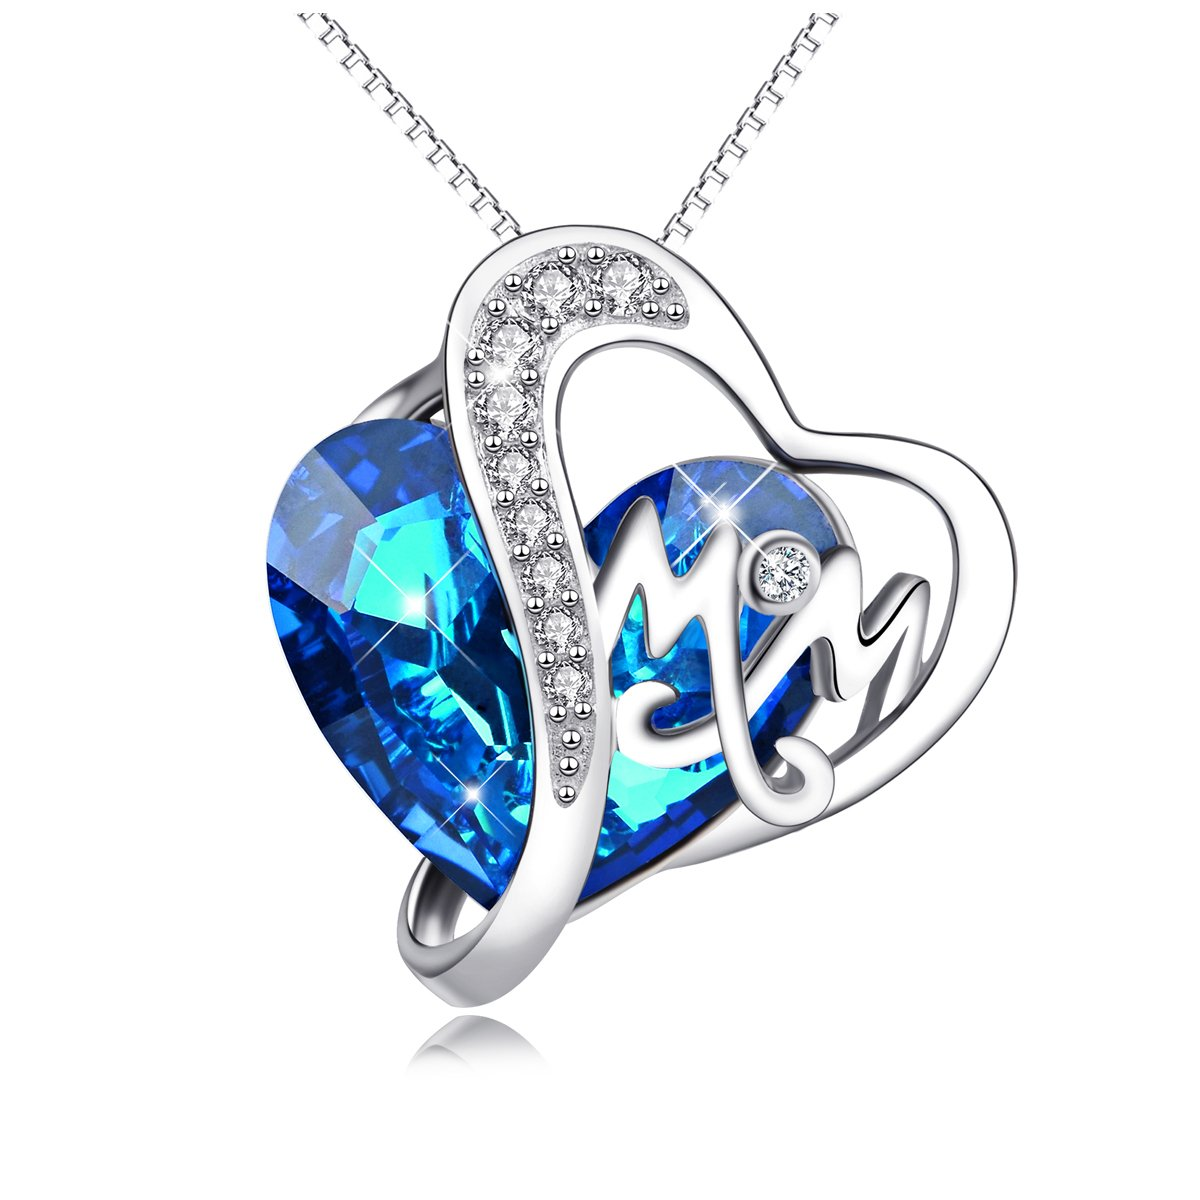 AOBOCO 925 Sterling Silver Mom Necklace with Blue Heart Swarovski Crystals Mothers Birthday Jewelry Gifts